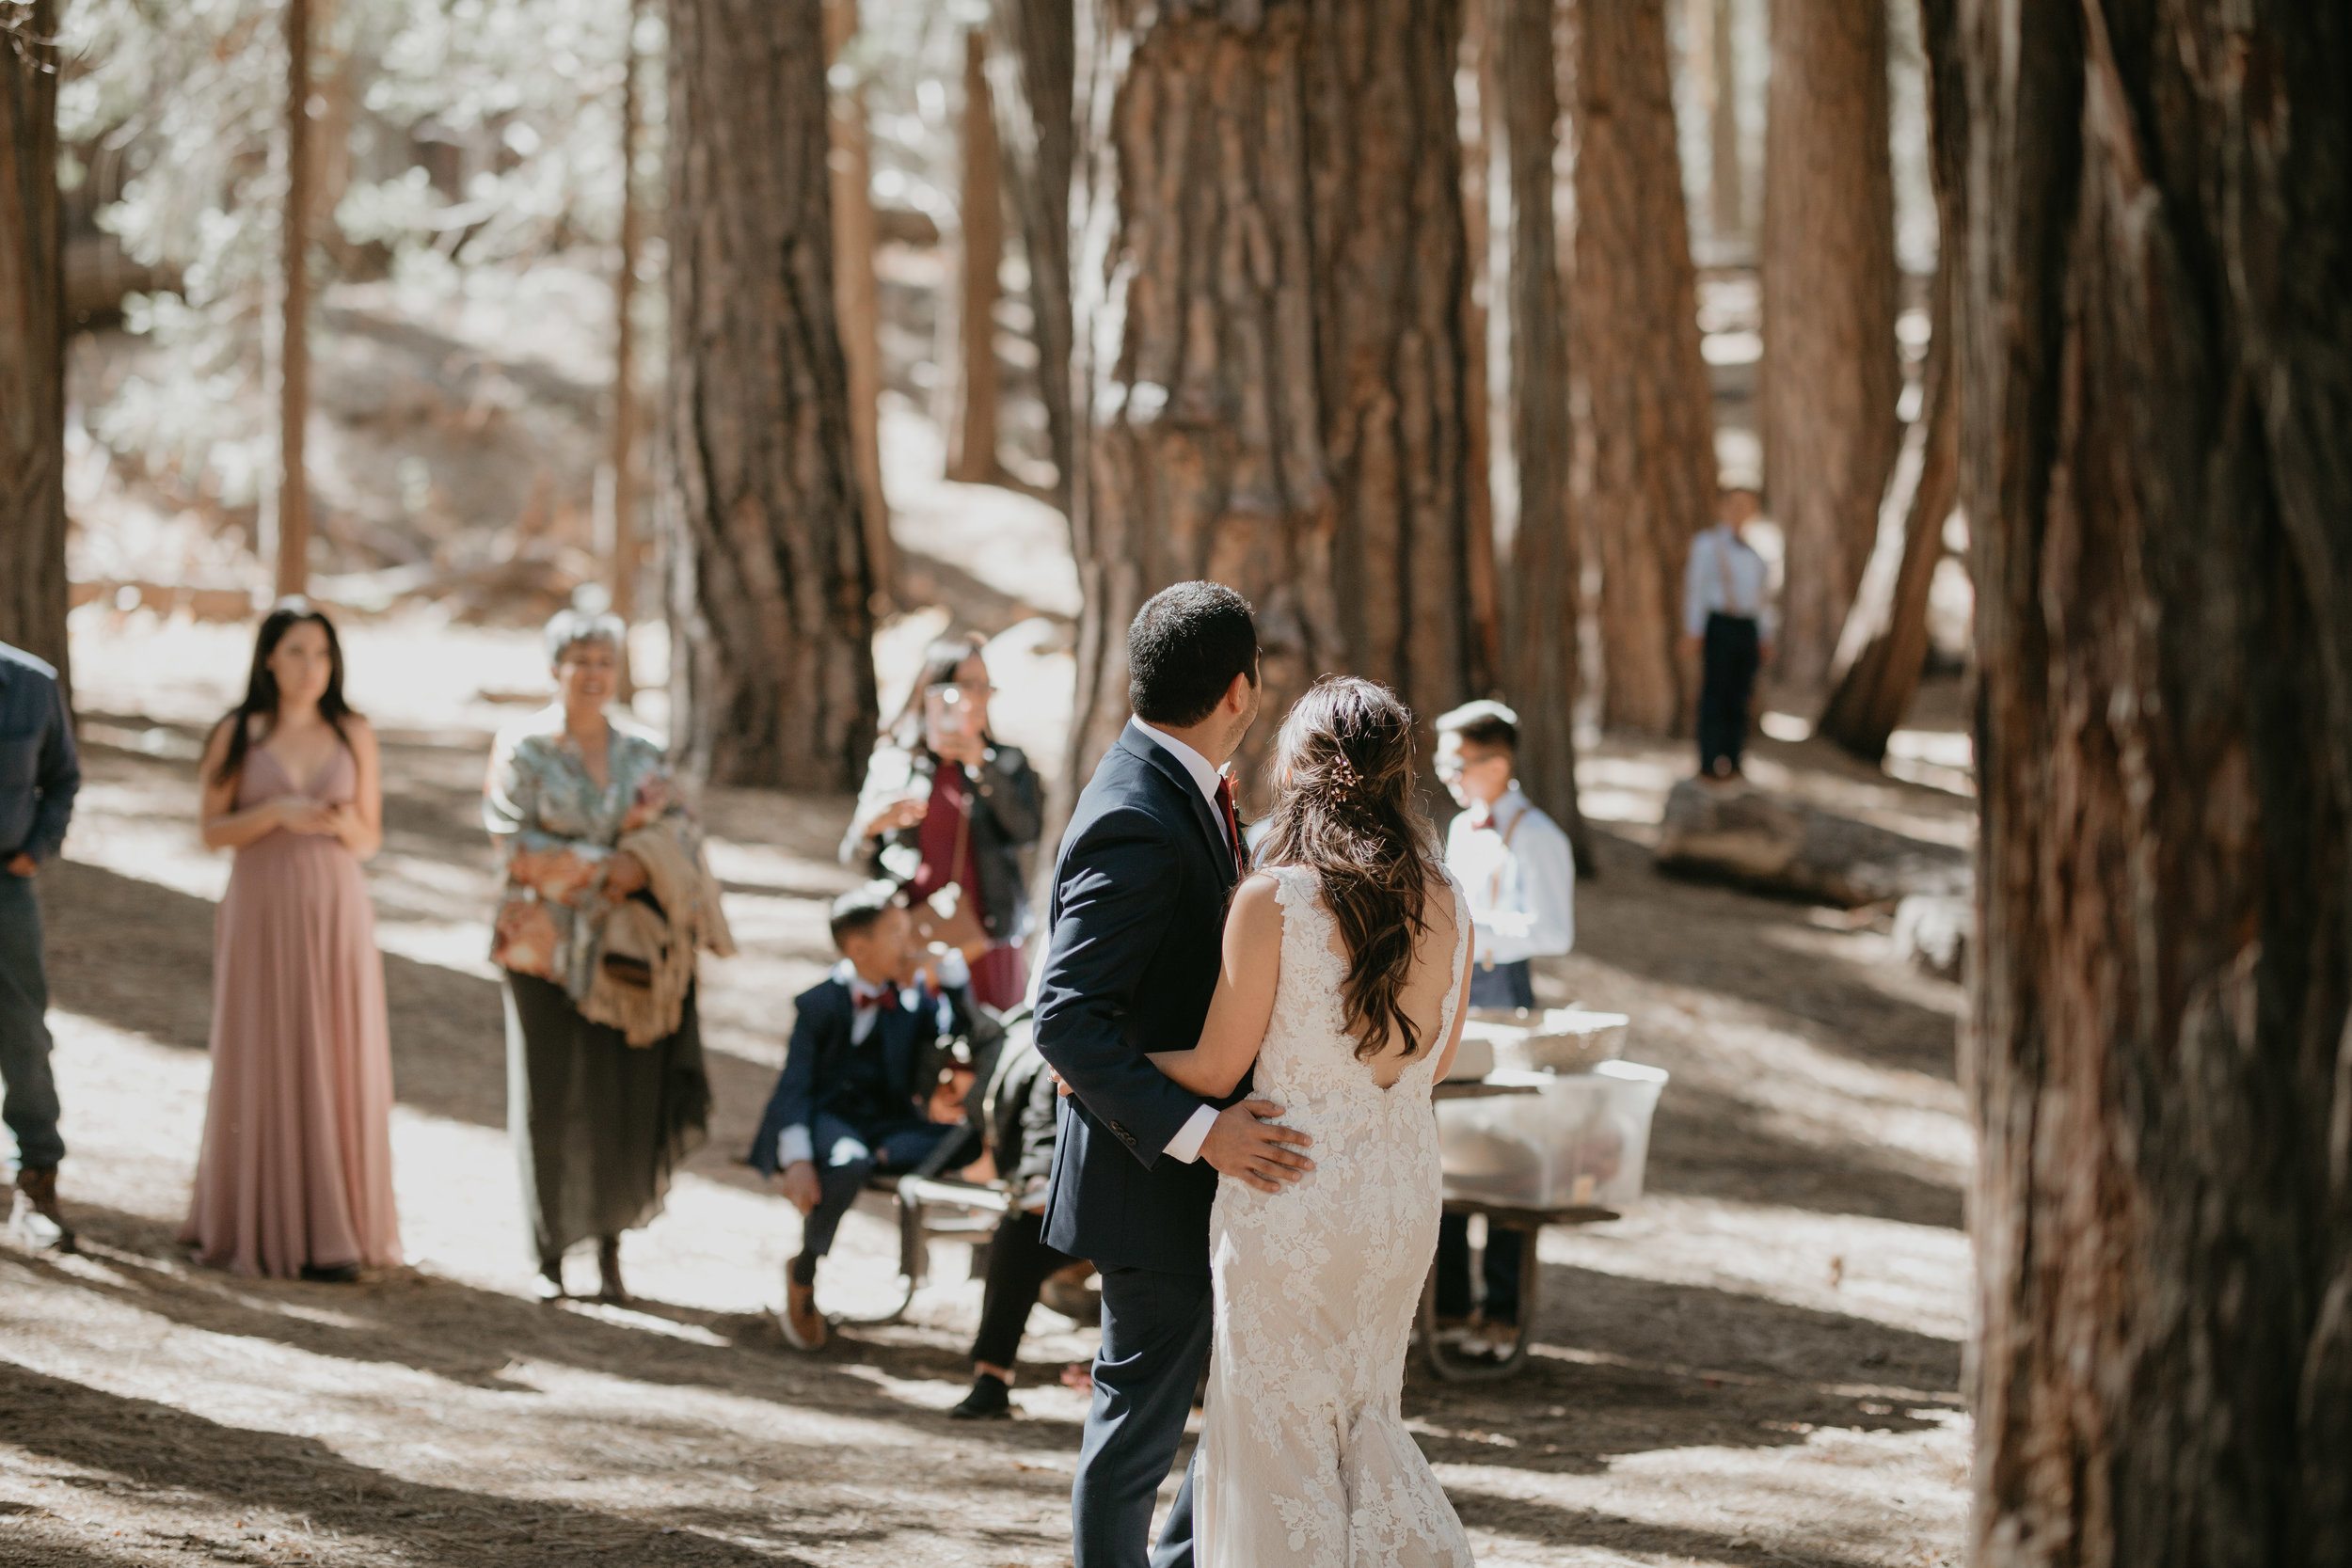 nicole-daacke-photography-intimate-elopement-wedding-yosemite-national-park-california-taft-point-sunset-photos-yosemite-valley-tunnel-view-first-look-sunrise-golden-granite-hiking-adventure-wedding-adventurous-elopement-photographer-78.jpg